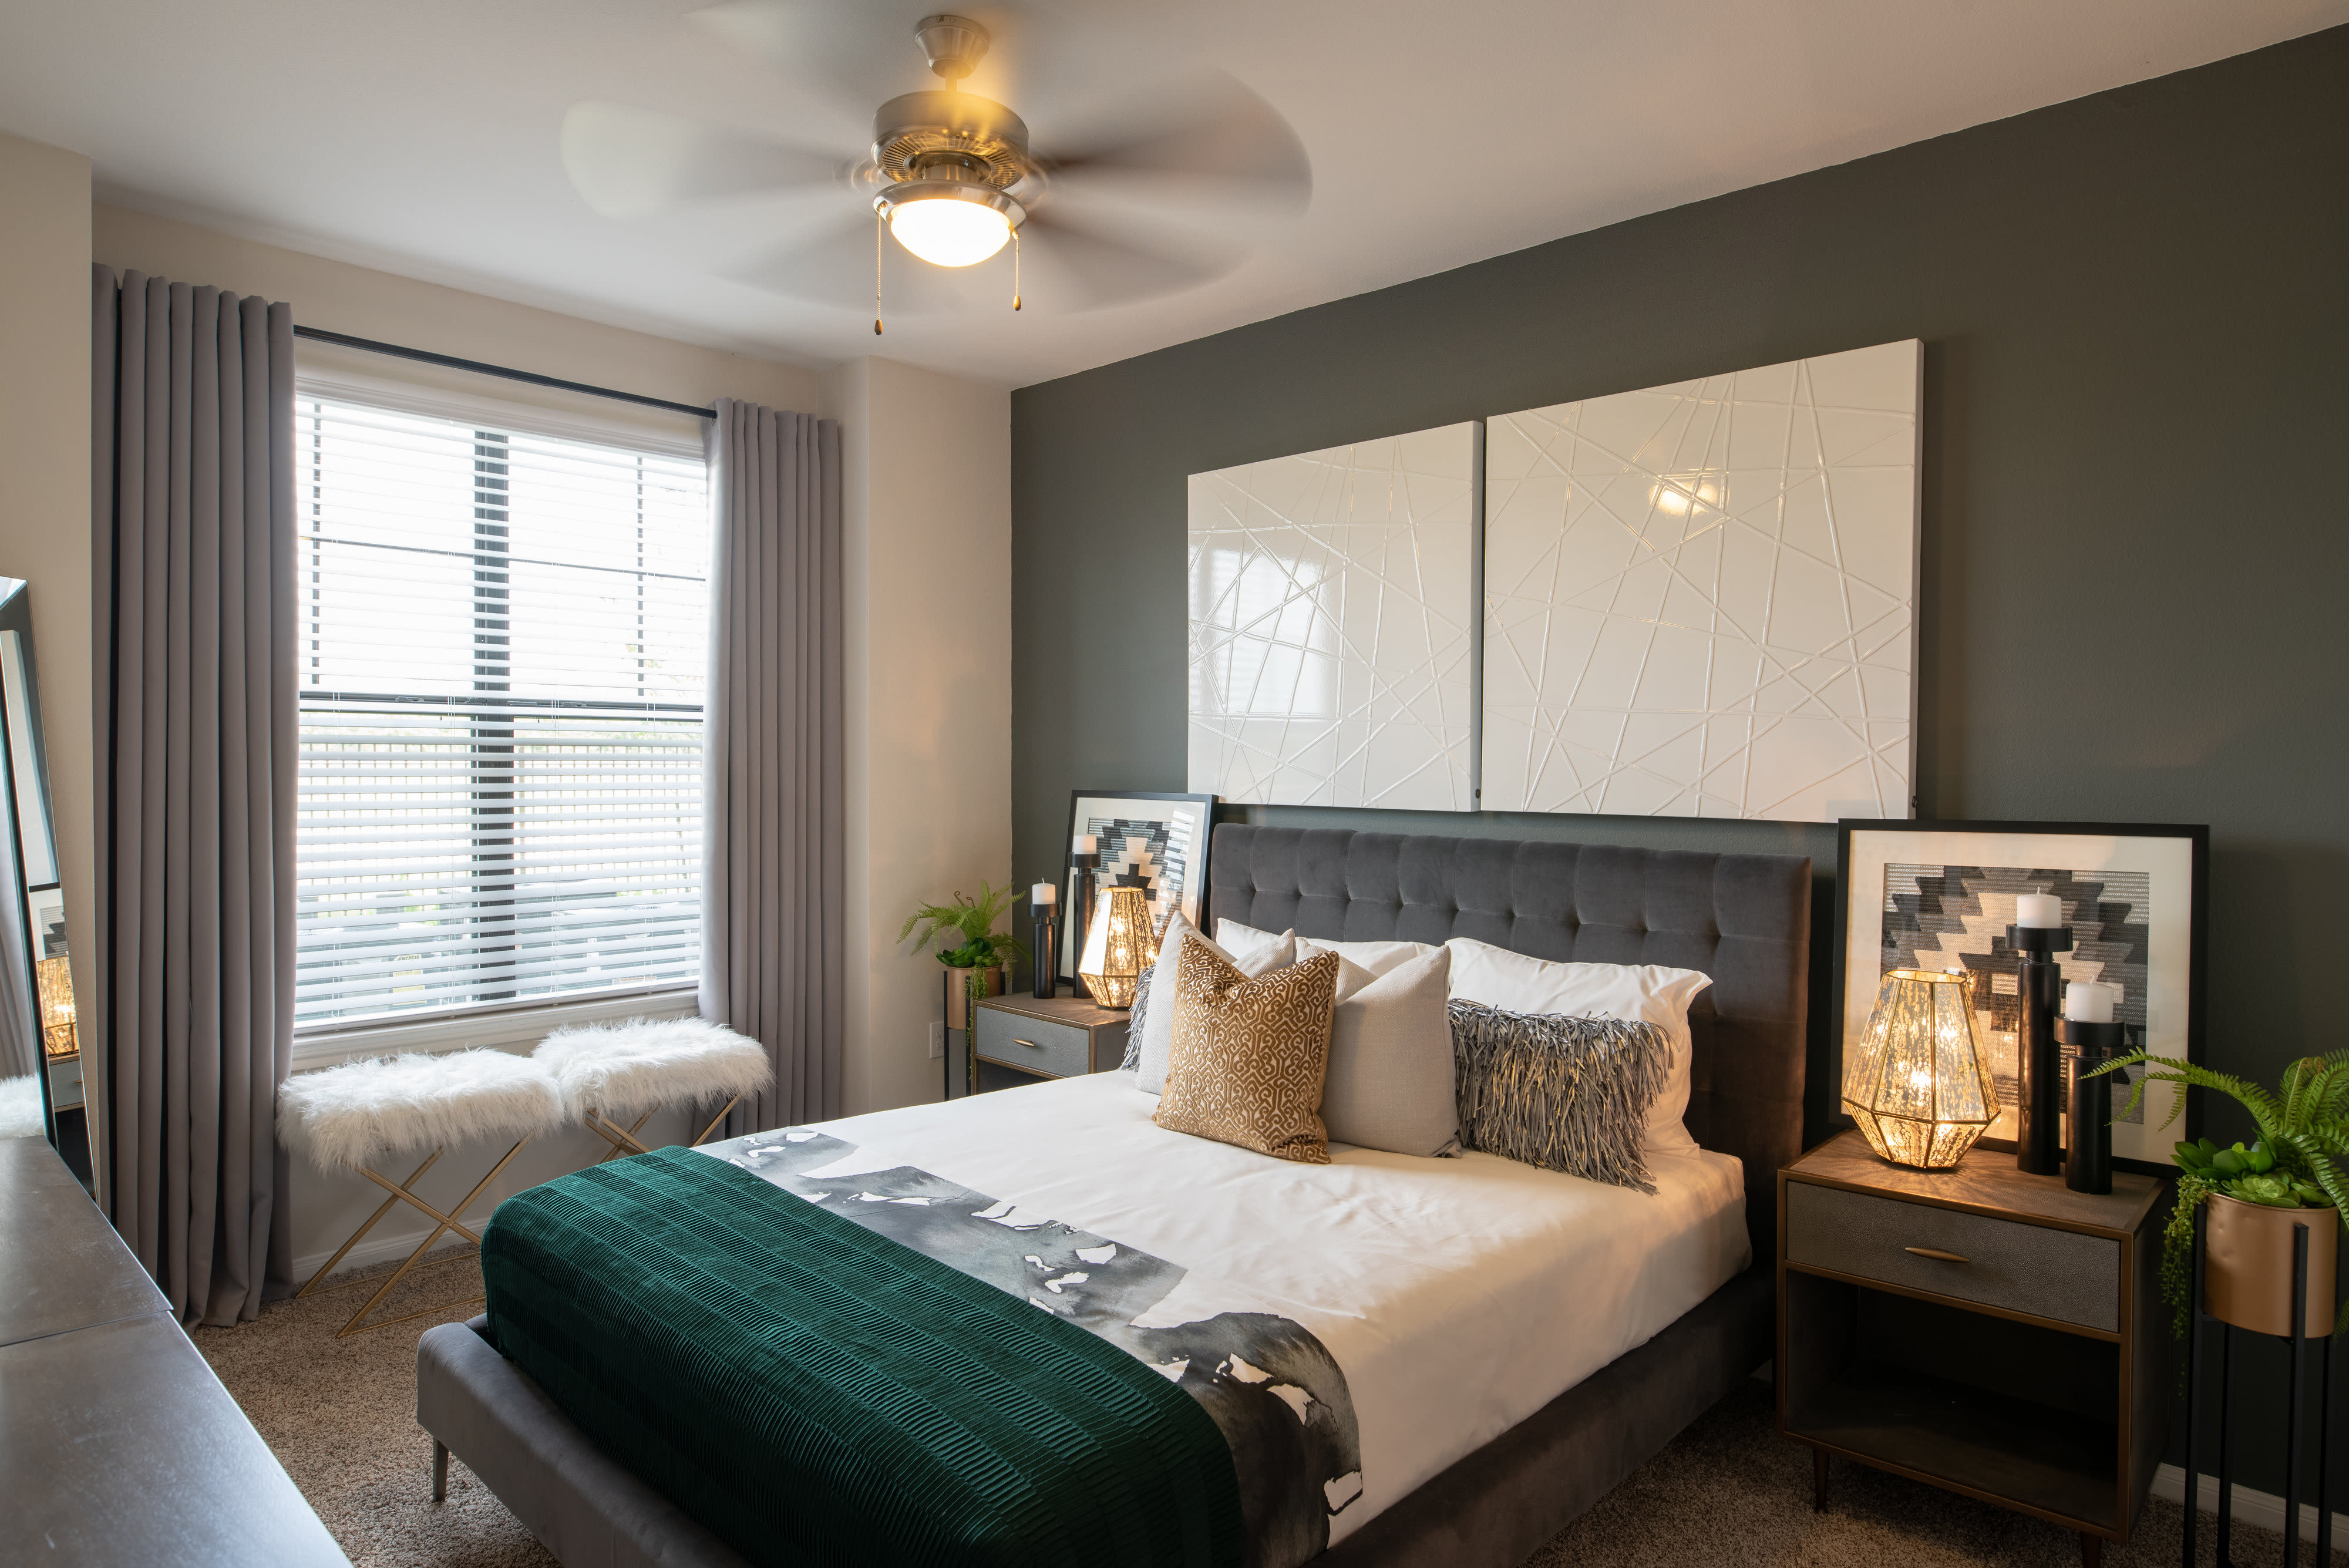 Come Home To Your Luxurious Brand New Apartment at Haven at Liberty Hills in Houston, TX